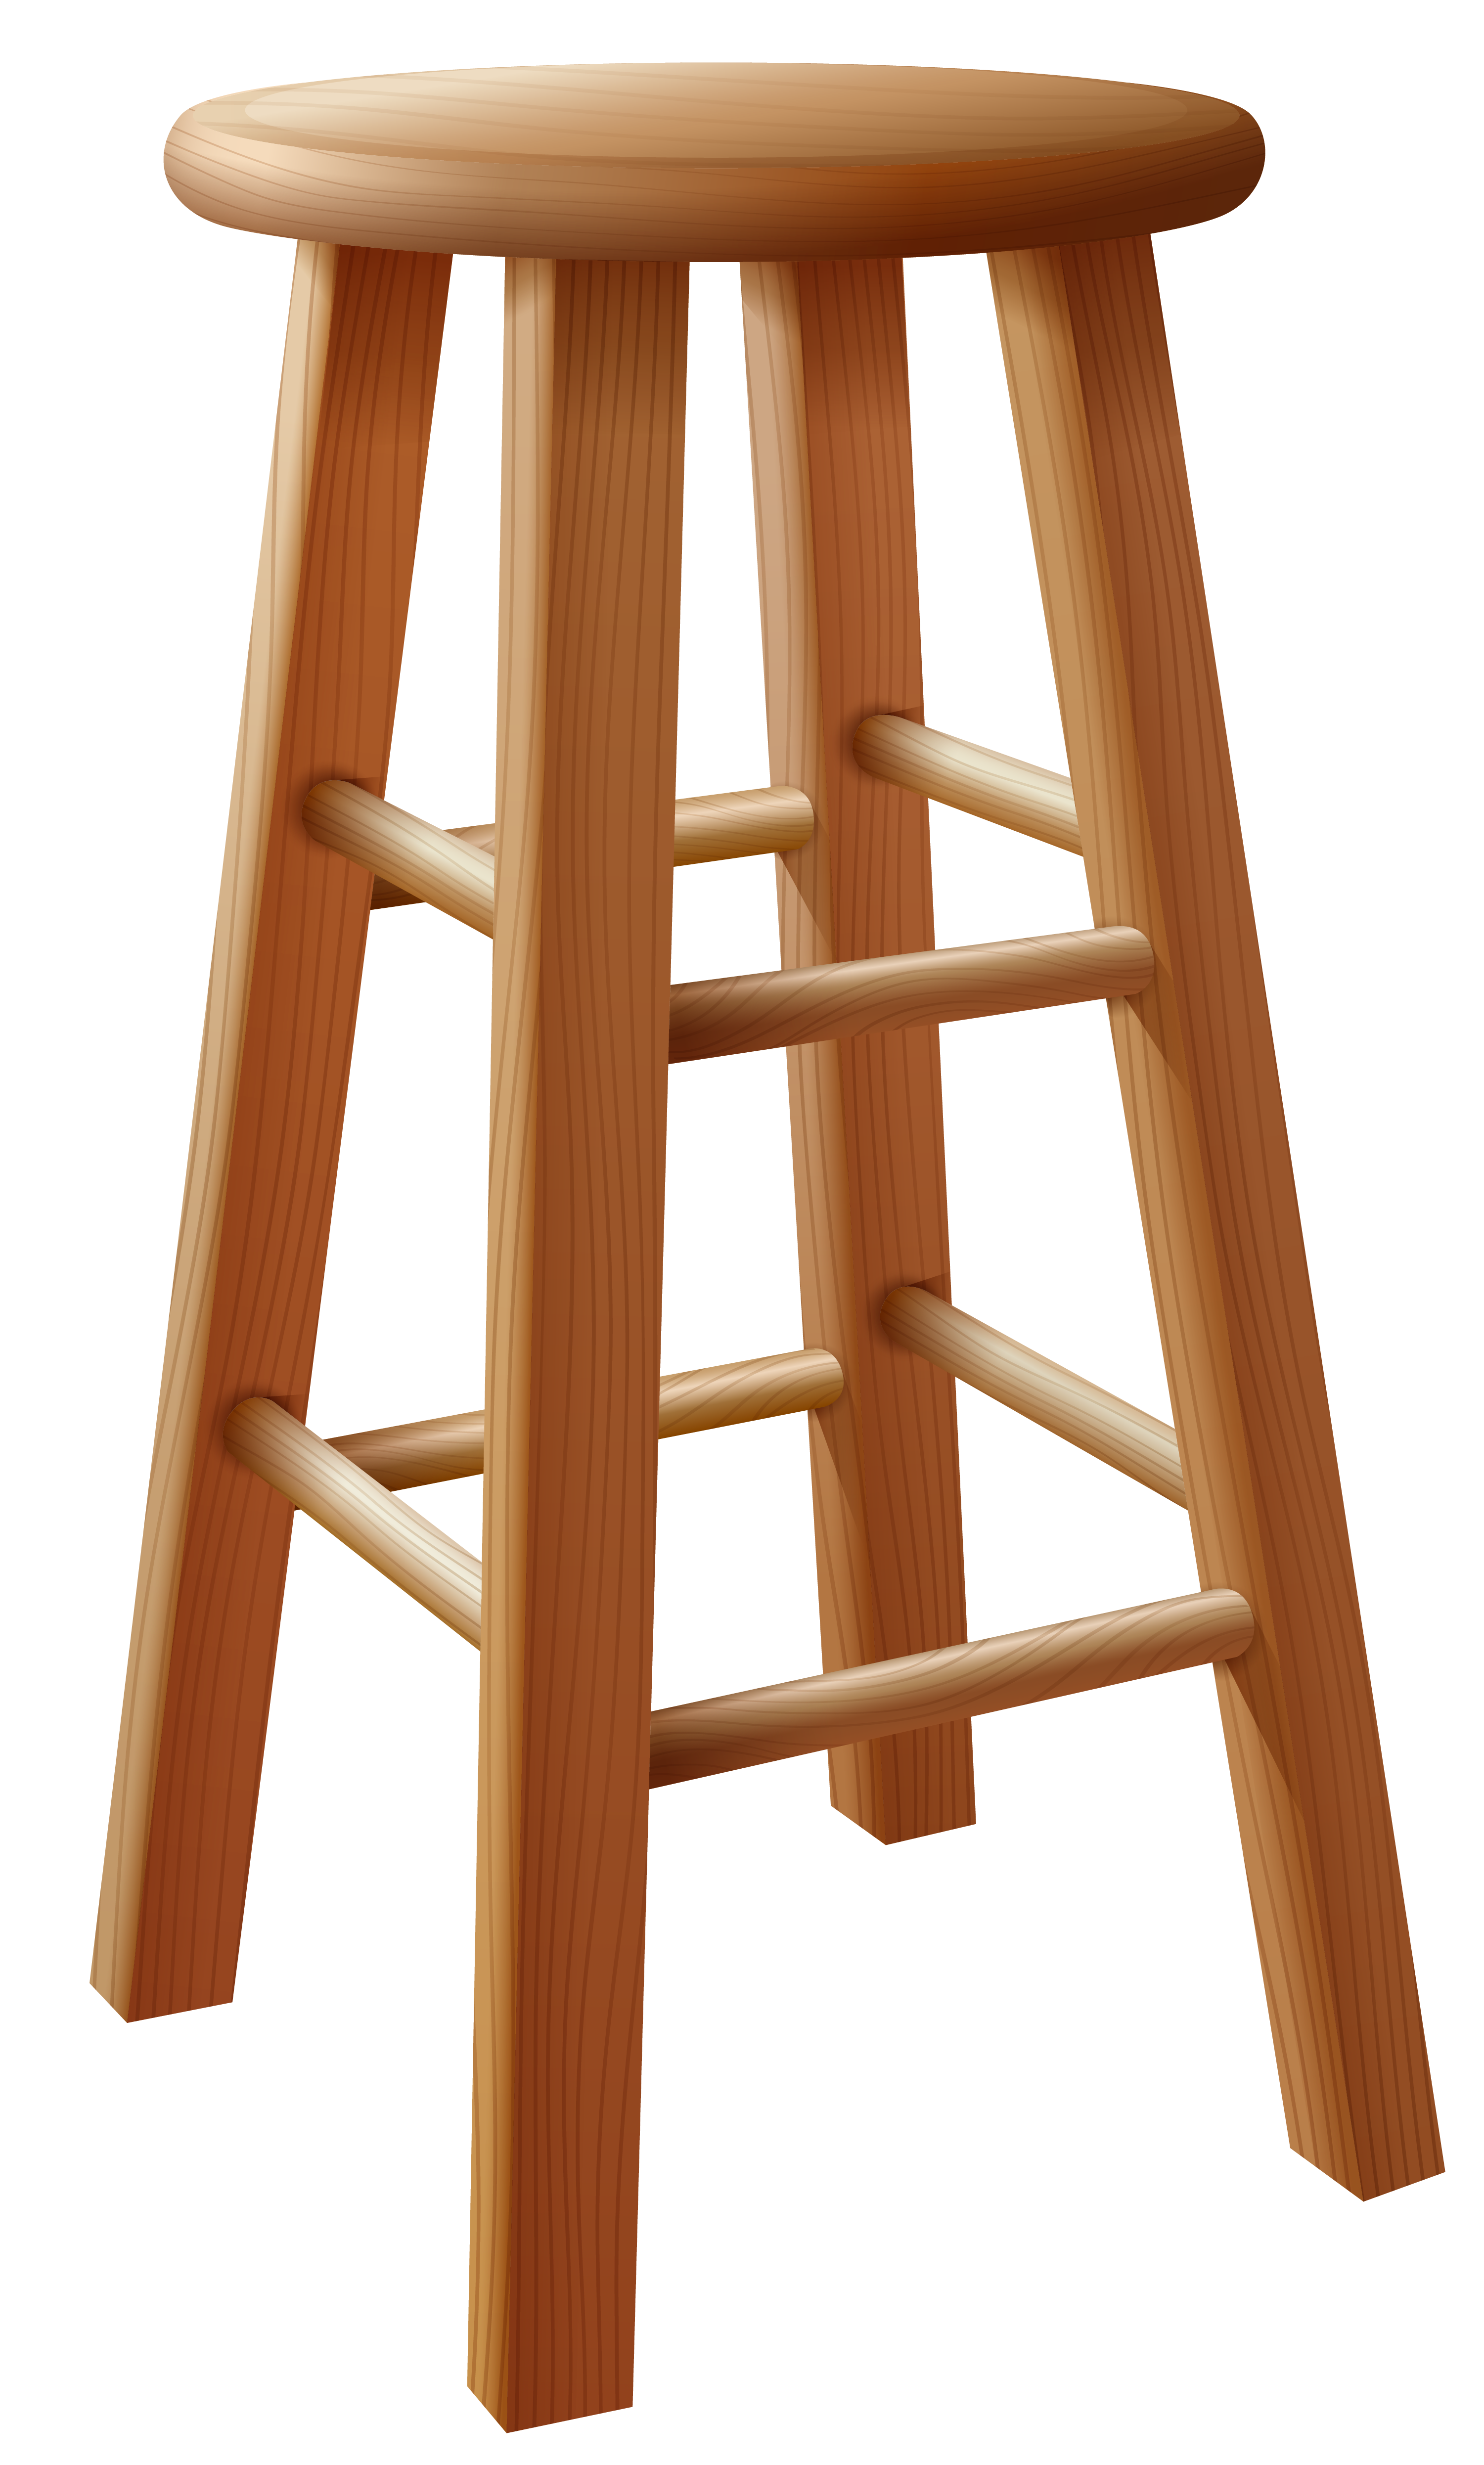 Bar stool png image. Podium clipart wooden